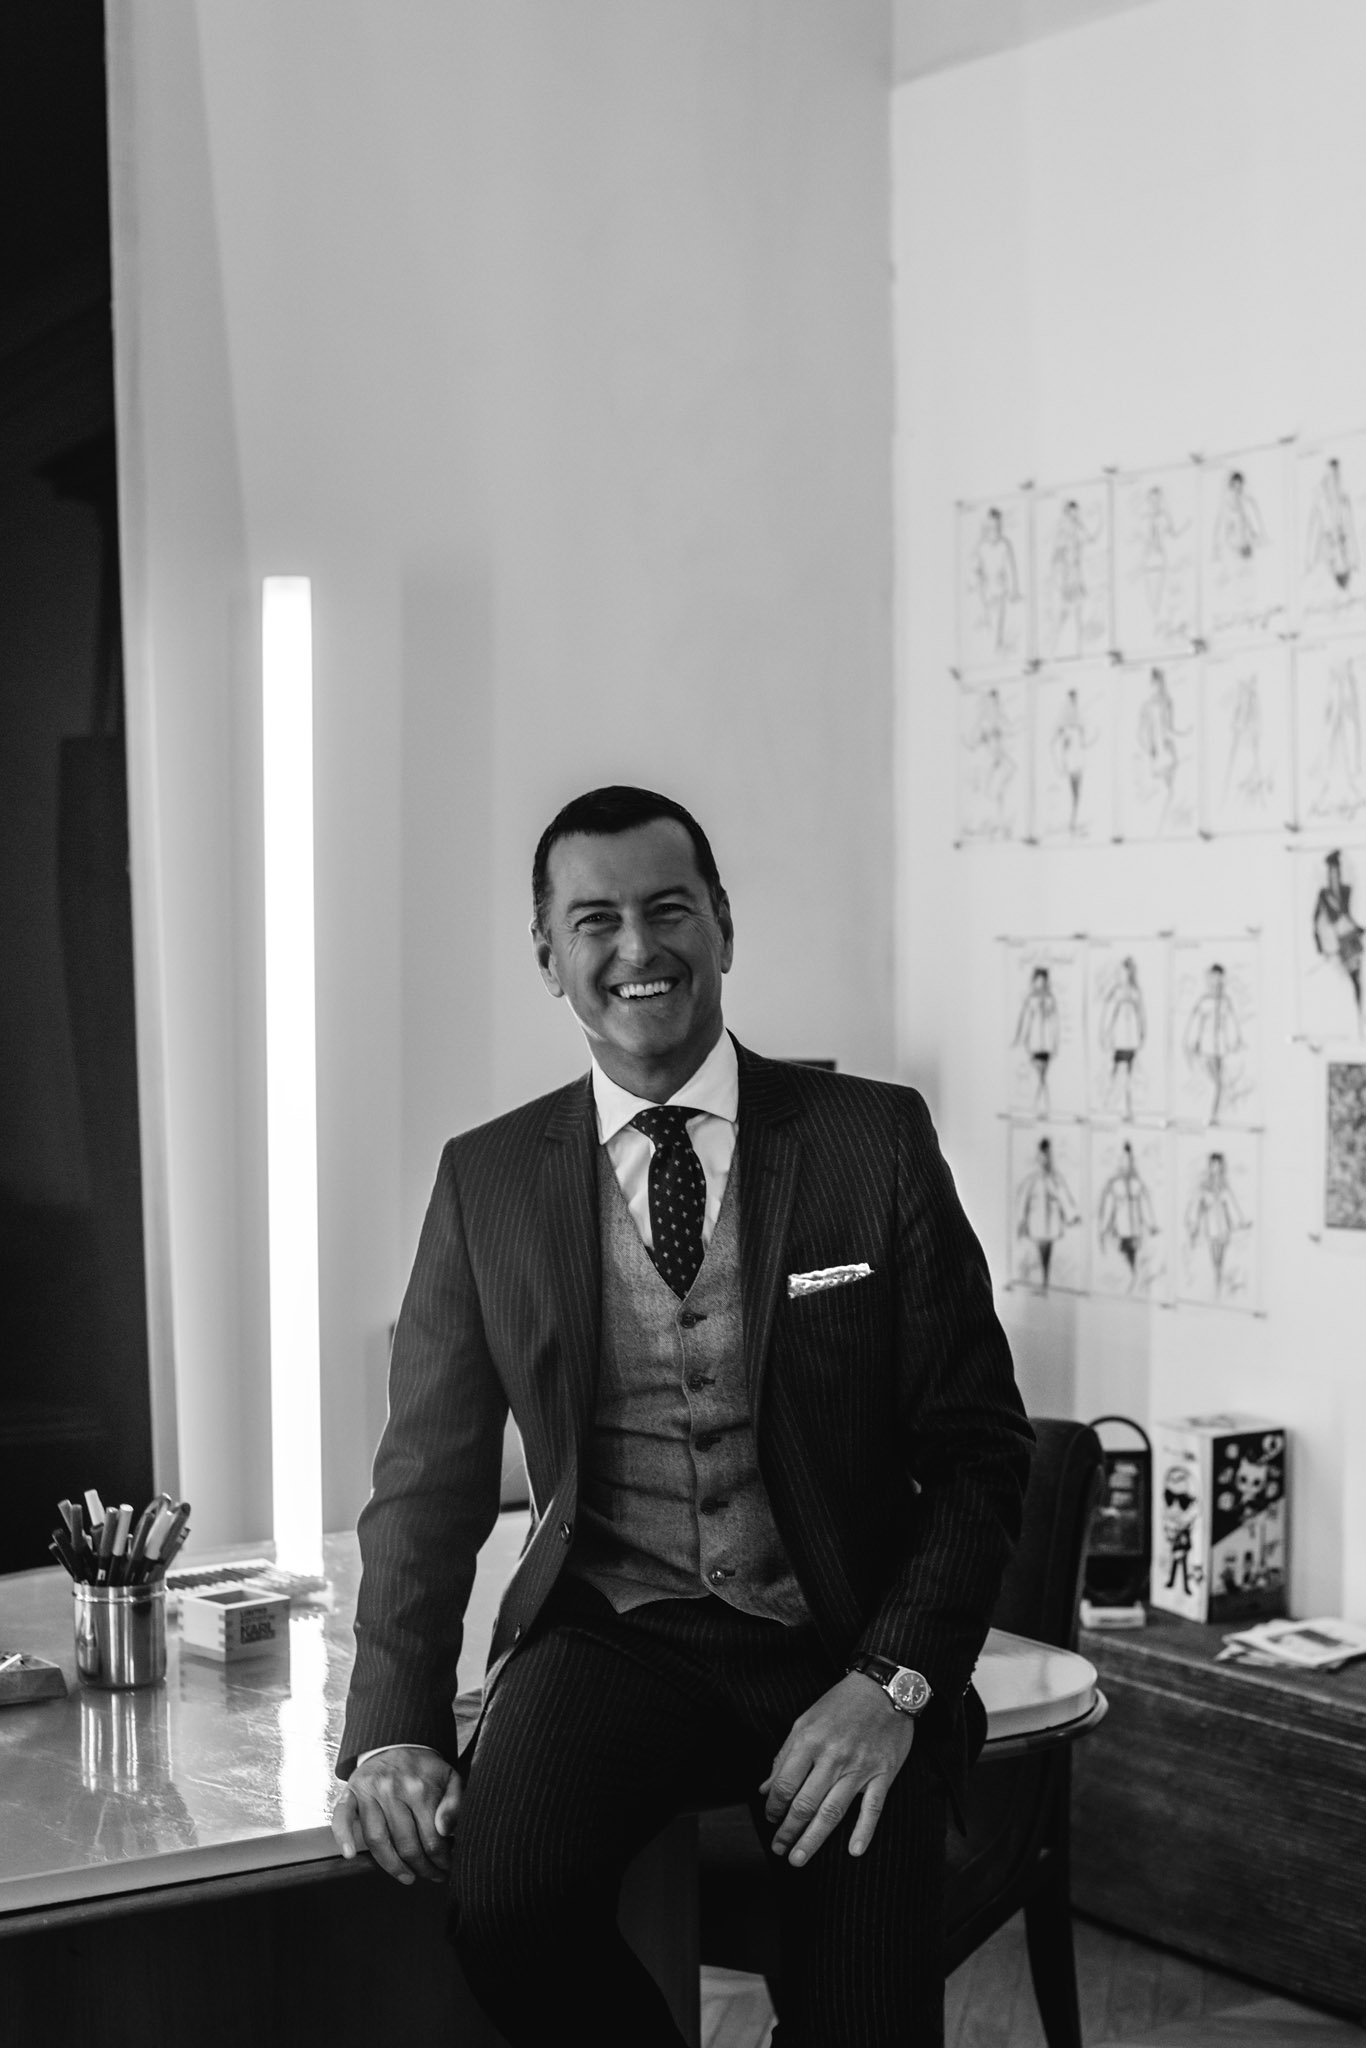 Pier Paolo Righi, CEO of Karl Lagerfeld